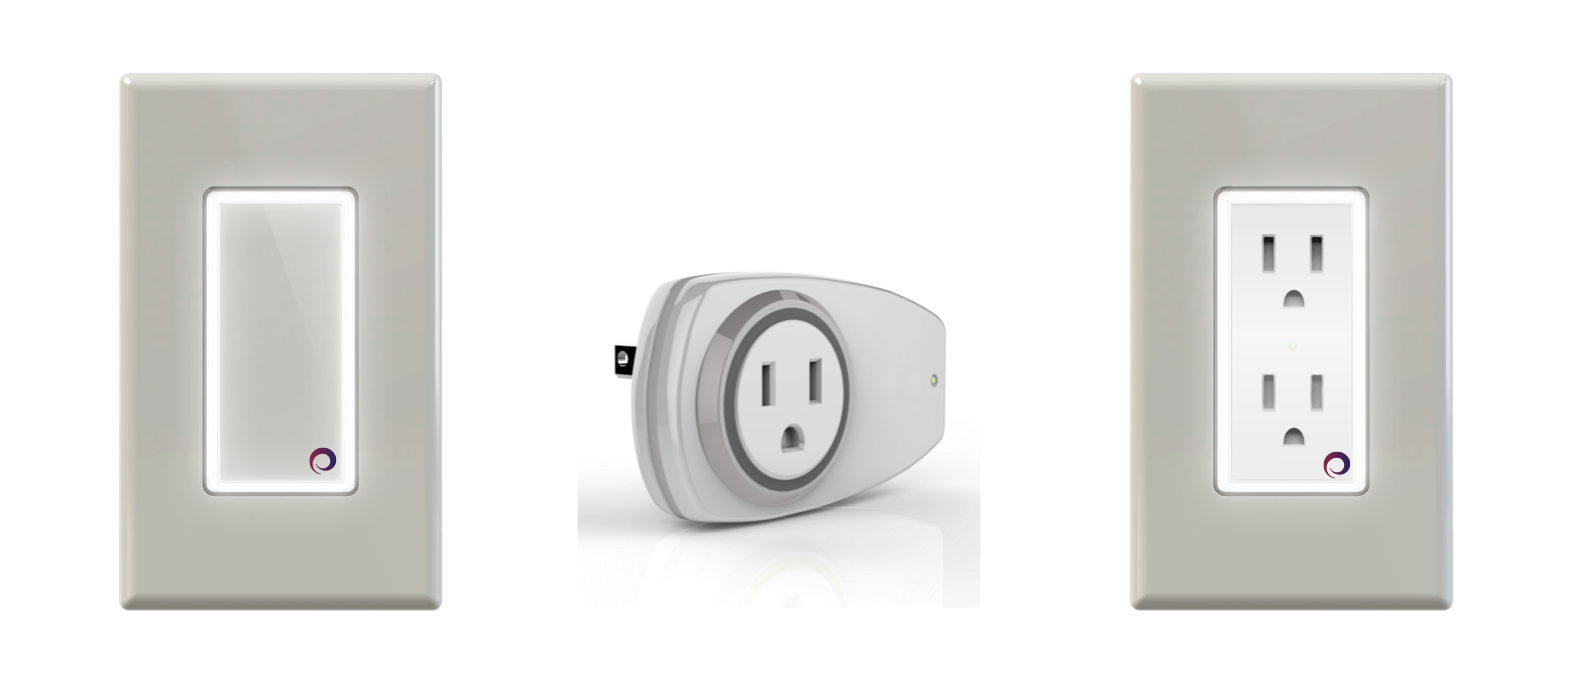 Superior Plum Has A Full Line Of Energy Management And Convenience Products. In  Addition To The Plum Lightpad, We Also Have The Plum SmartPlug And The Plum  Smart ... Photo